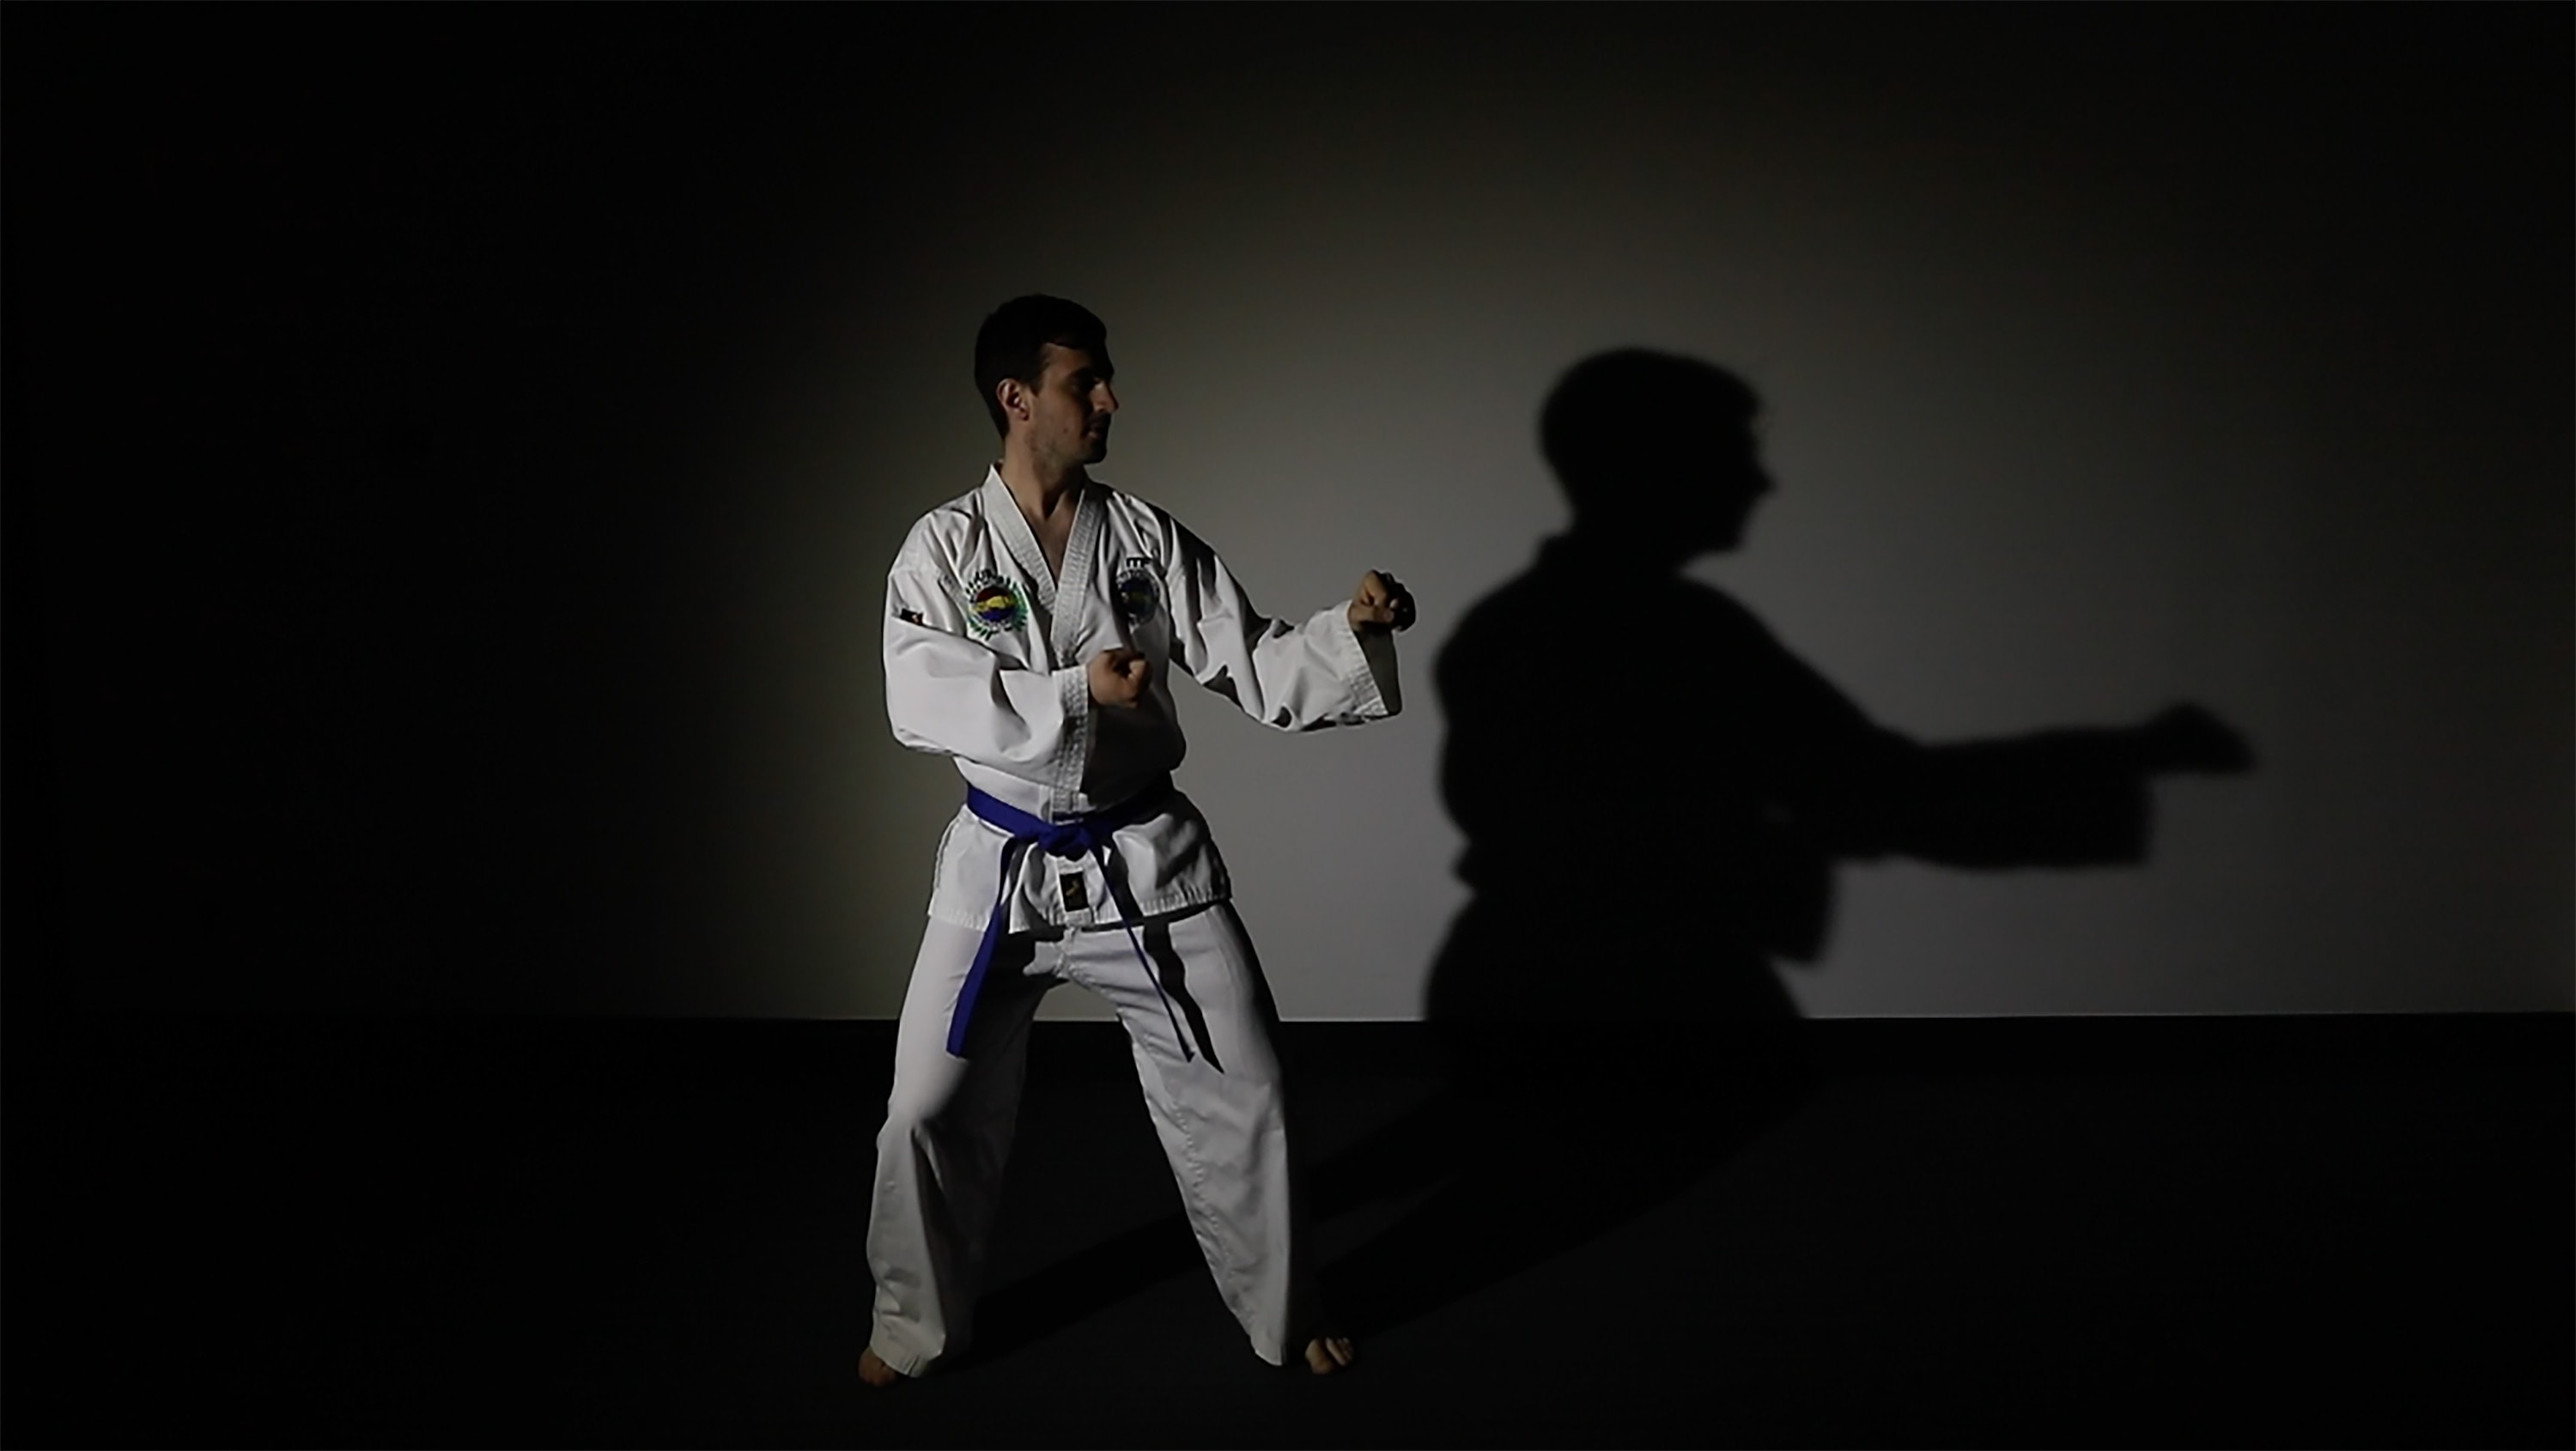 Martial arts motion of a man in a standing position